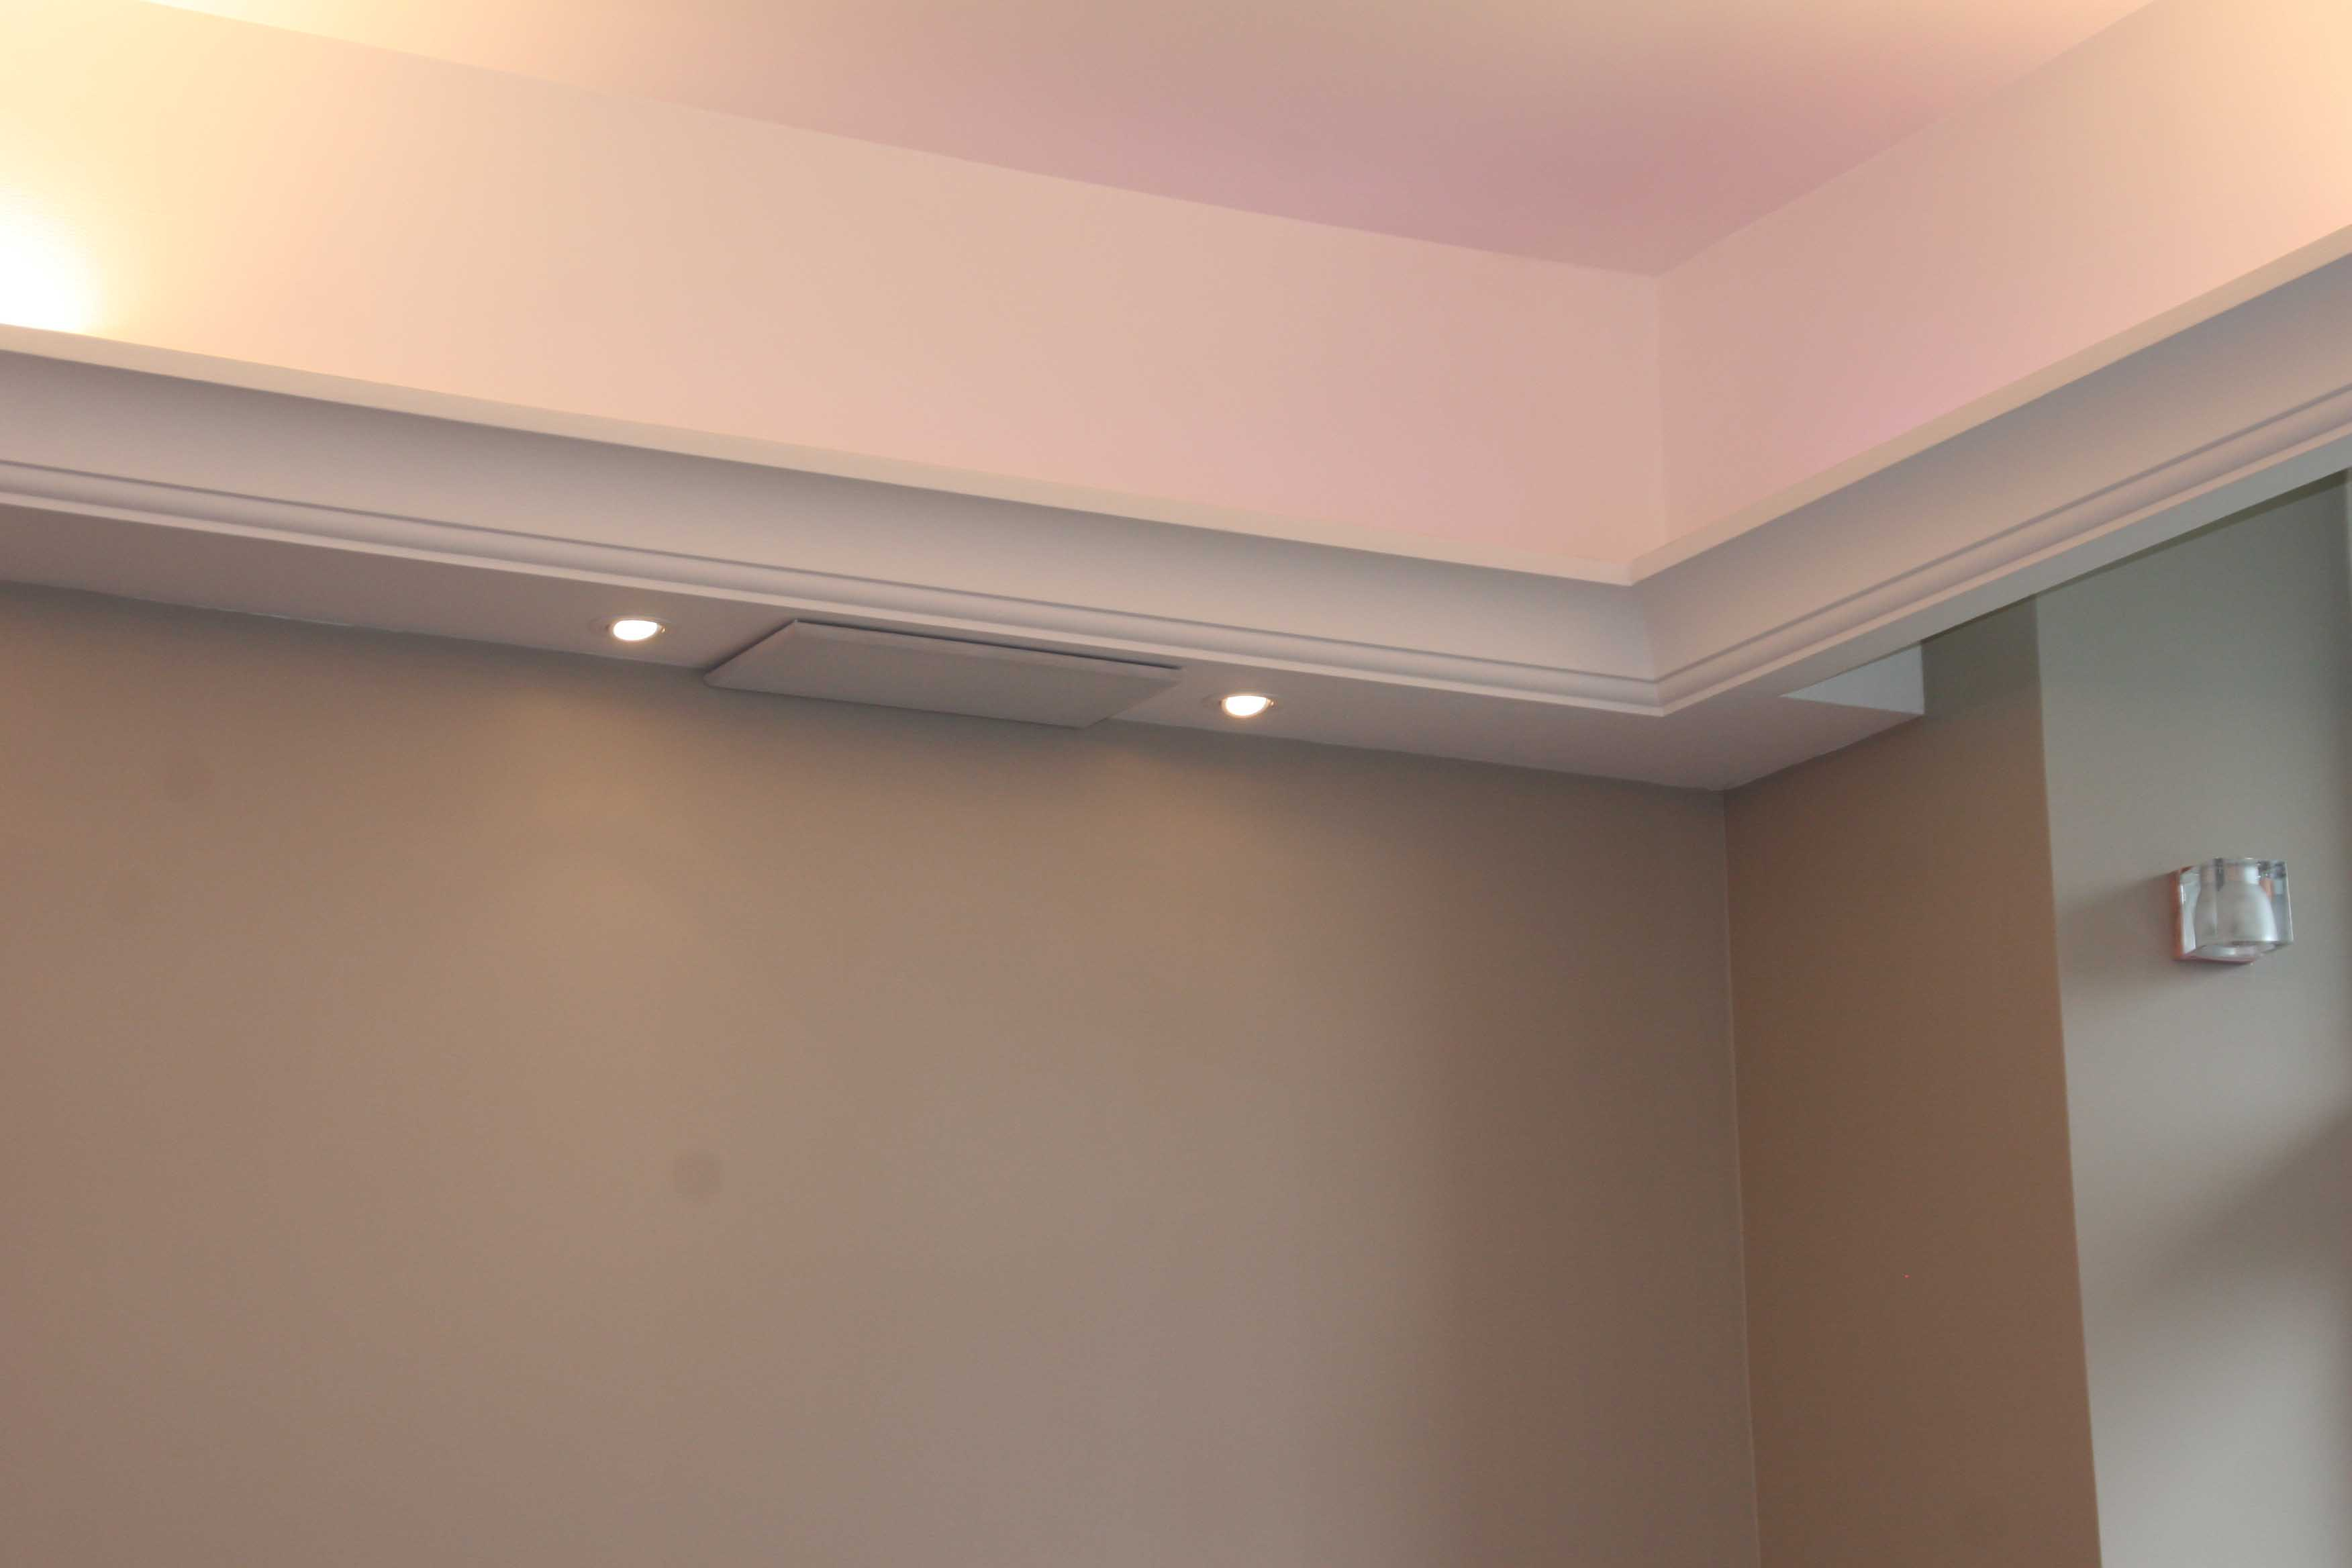 Decoration de noel plafond tourcoing estimation travaux for Corniche bois plafond